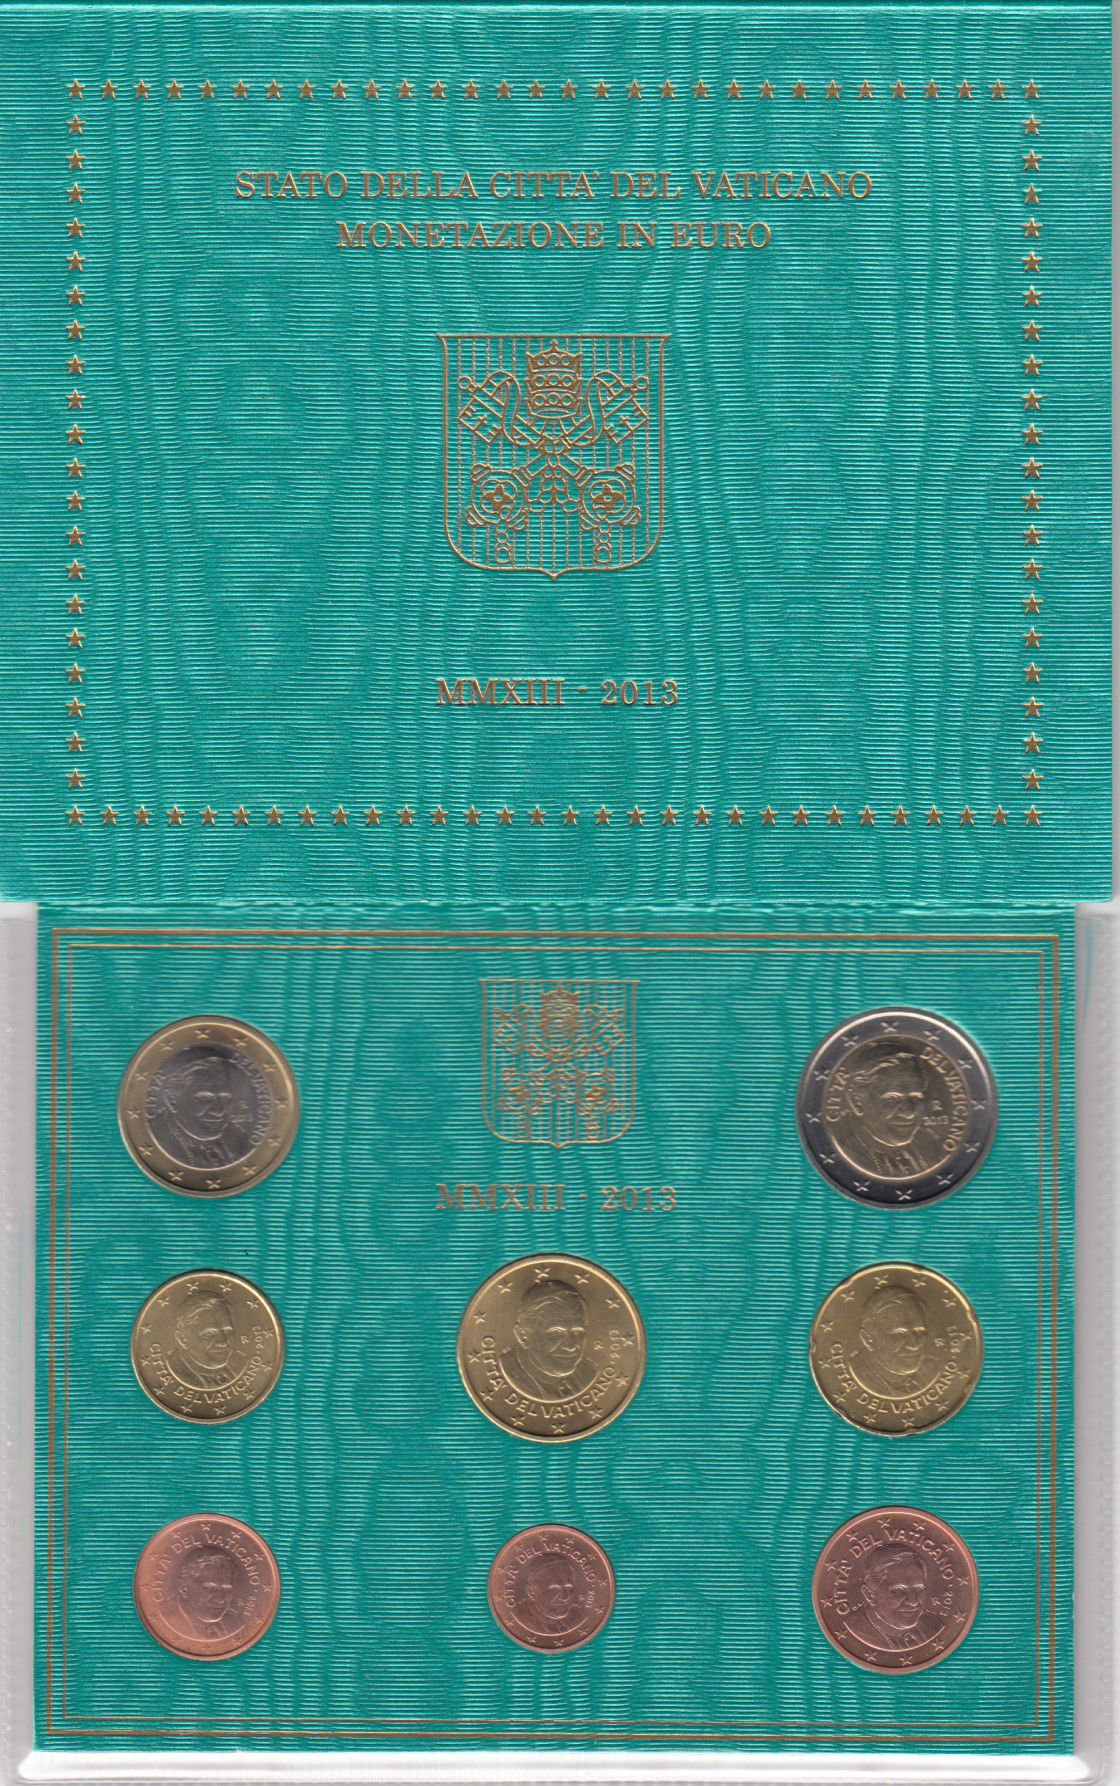 Vatican City State Proof set of 2013 - Benoit XVI - 8 coins in Euros